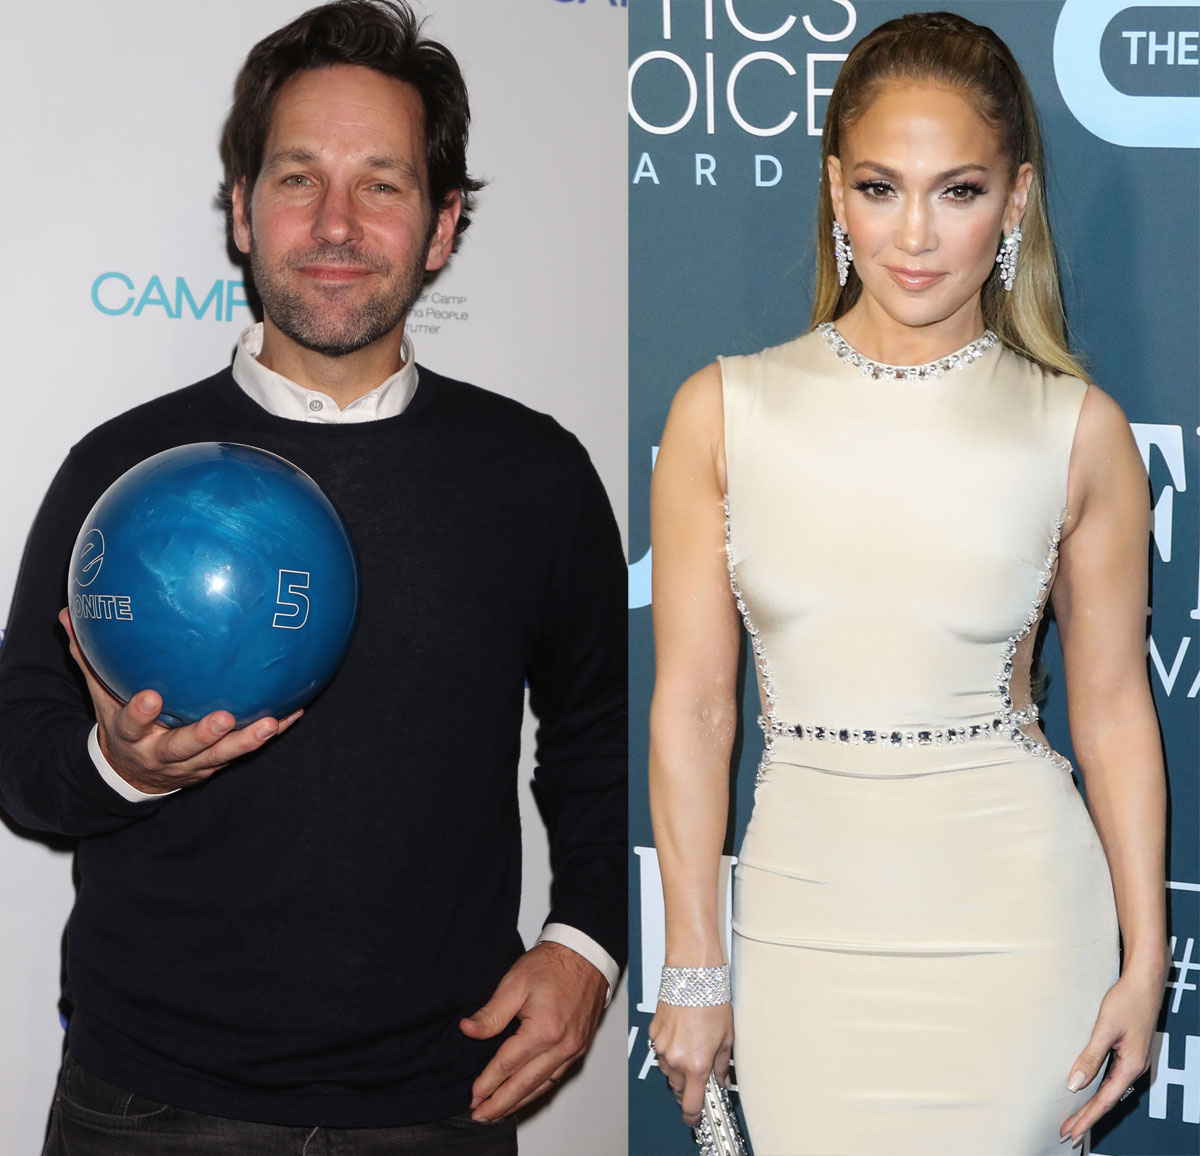 Who knew Paul Rudd and Jennifer Lopez were the same age?!